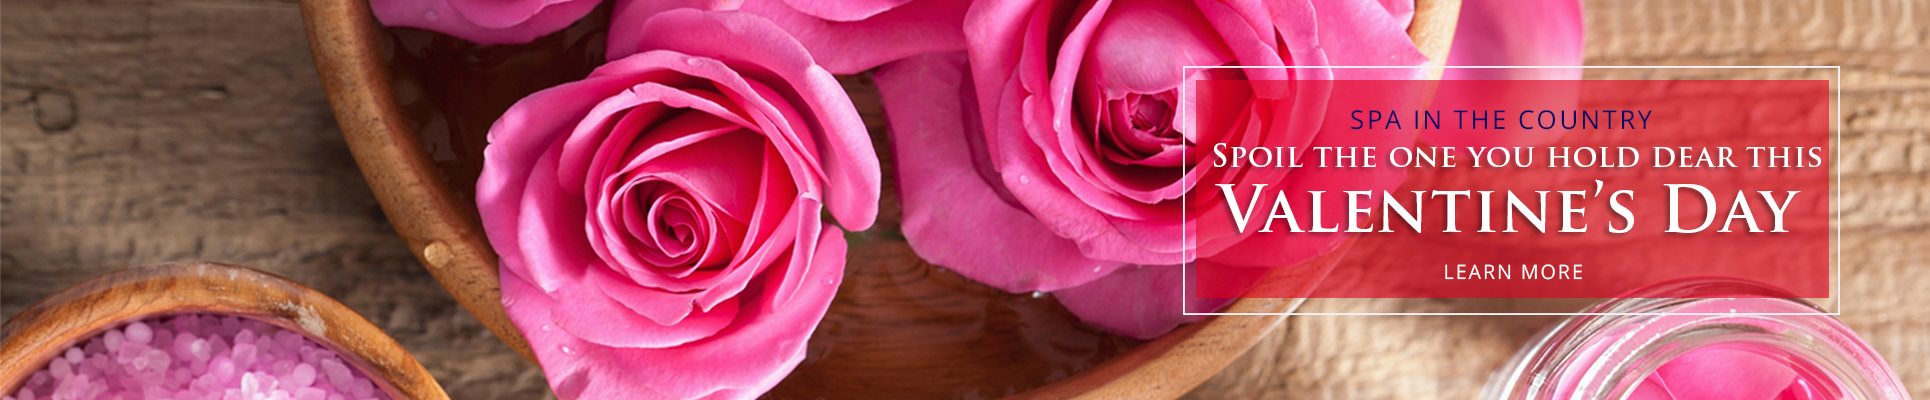 Spa Valentines Day Treatment Packages 2018